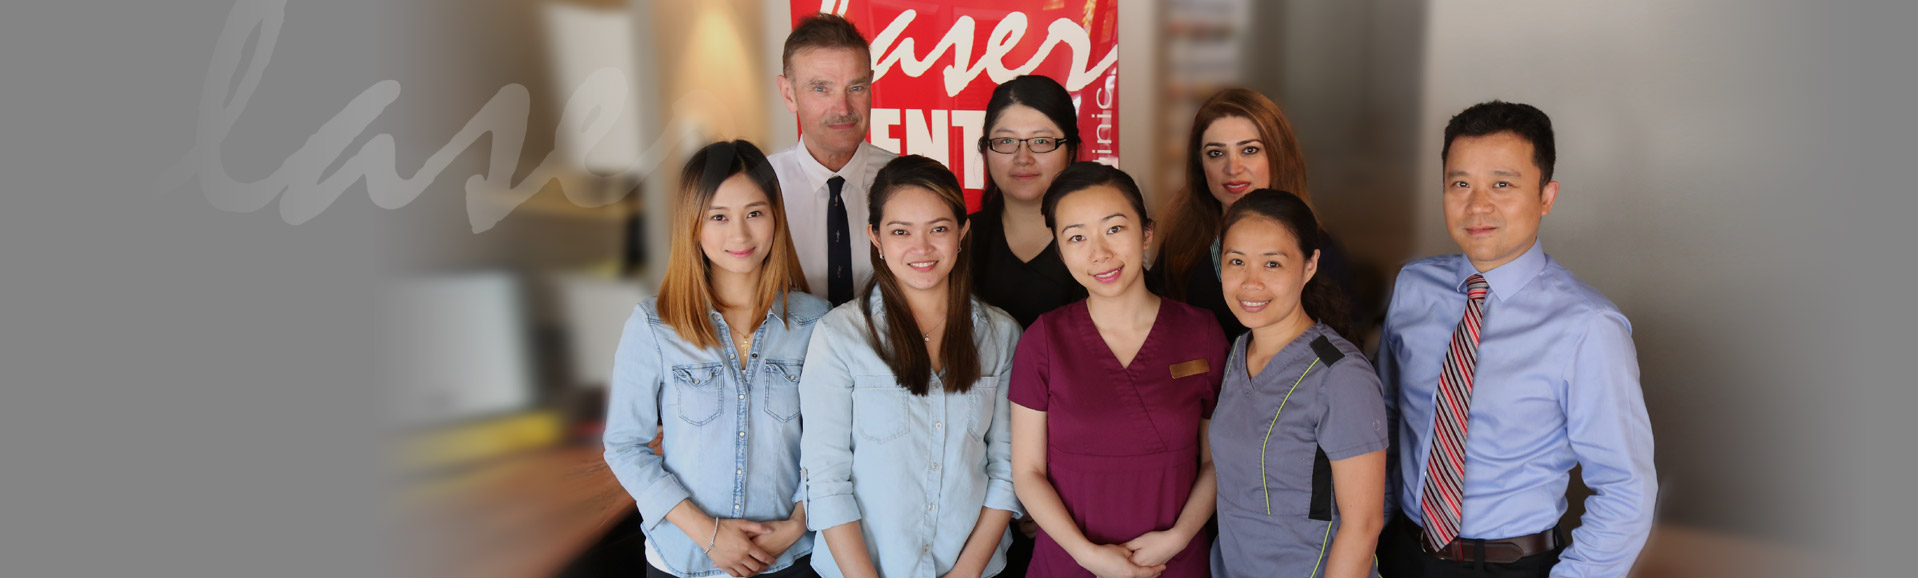 Laser Dental Clinic Burnaby Metrotown Dental Clinic